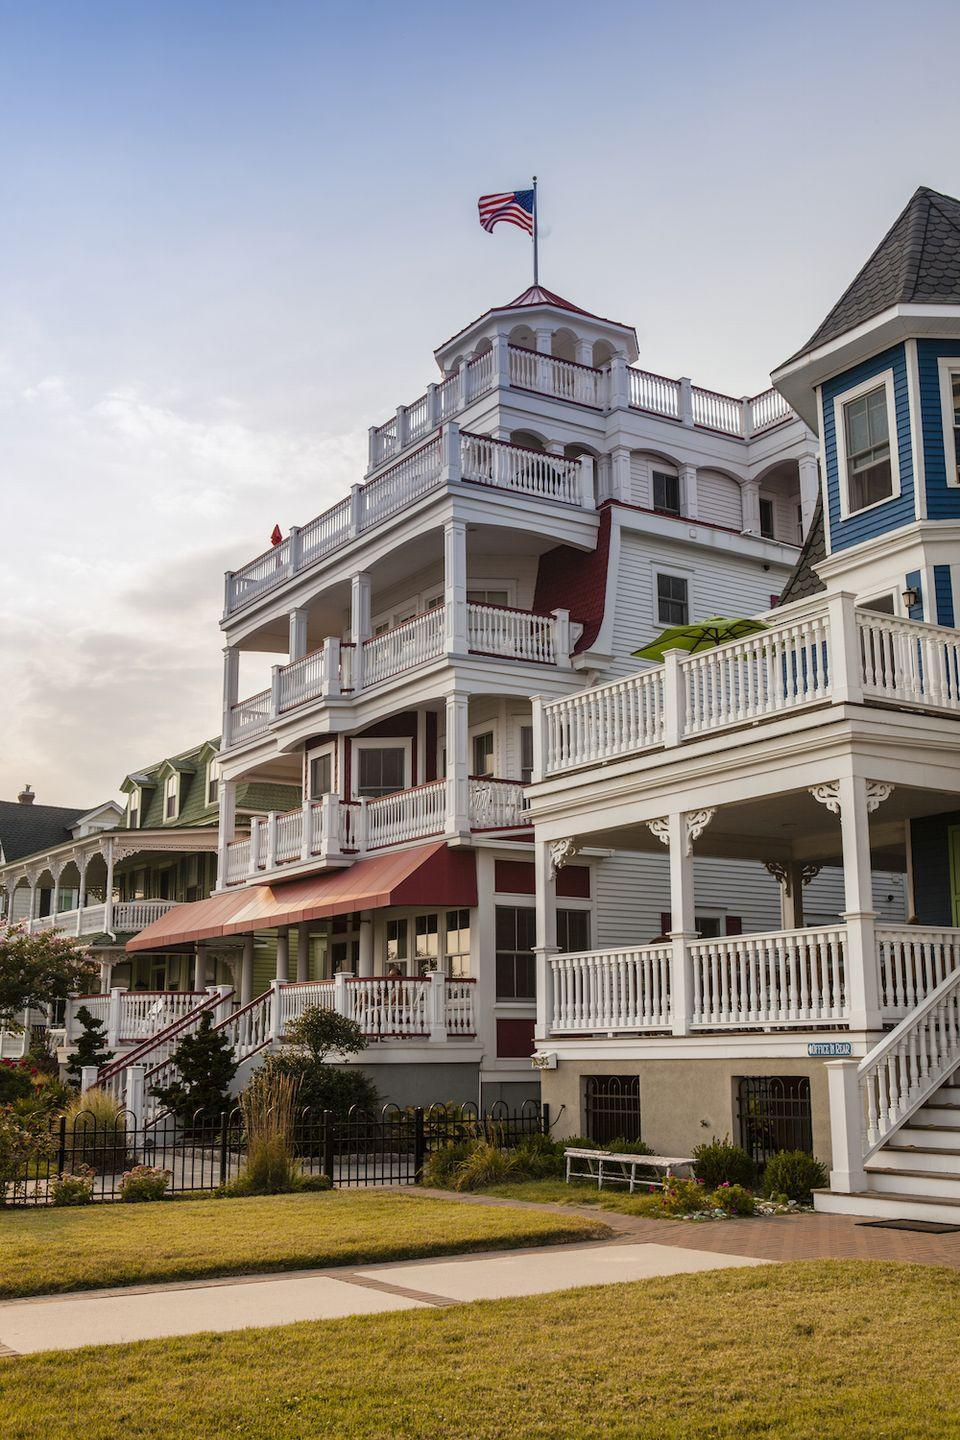 """<p>The southernmost beach town along New Jersey's shore, <a href=""""http://www.visitnj.org/city/cape-may"""" rel=""""nofollow noopener"""" target=""""_blank"""" data-ylk=""""slk:Cape May"""" class=""""link rapid-noclick-resp"""">Cape May</a> has a distinctly different feel than other towns: It's elegant yet offers a lot of options for a great night (or day) out. Tour the area vineyards, indulge in fine dining, or just enjoy the Victorian architecture while taking a stroll. </p><p><a href=""""https://www.housebeautiful.com/lifestyle/g4449/best-hotels-in-the-world/"""" rel=""""nofollow noopener"""" target=""""_blank"""" data-ylk=""""slk:See the Cape May hotel that's one of the best in the world »"""" class=""""link rapid-noclick-resp""""><em>See the Cape May hotel that's one of the best in the world »</em></a></p>"""